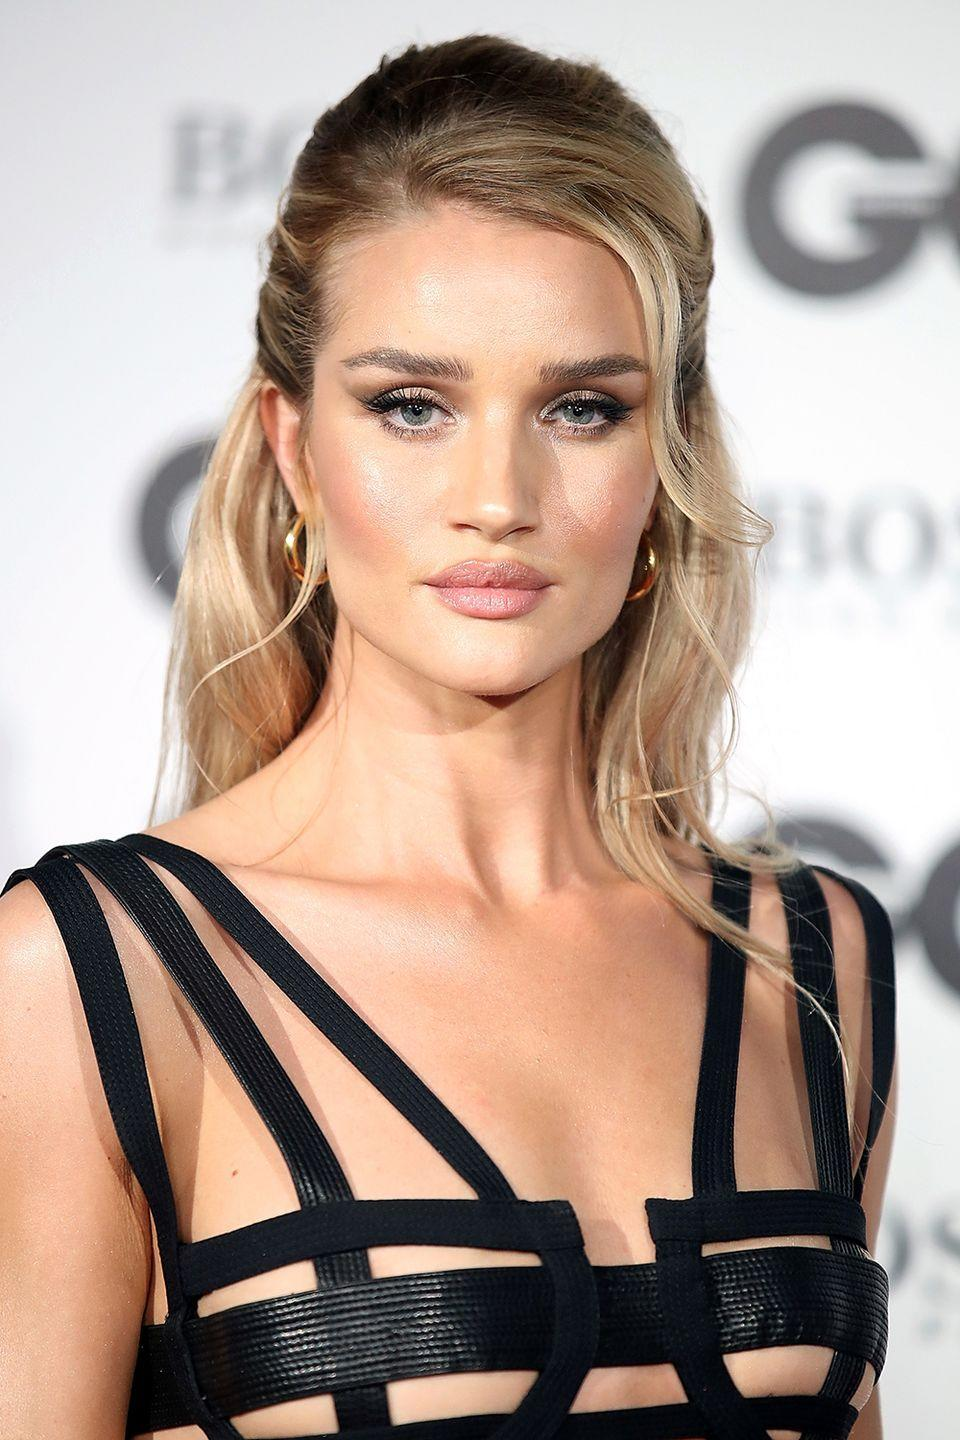 <p>Rosie Huntington-Whiteley's half-up hairstyle is neat and polished, save for a few wisps of hair framing her face for a more casual look. </p>